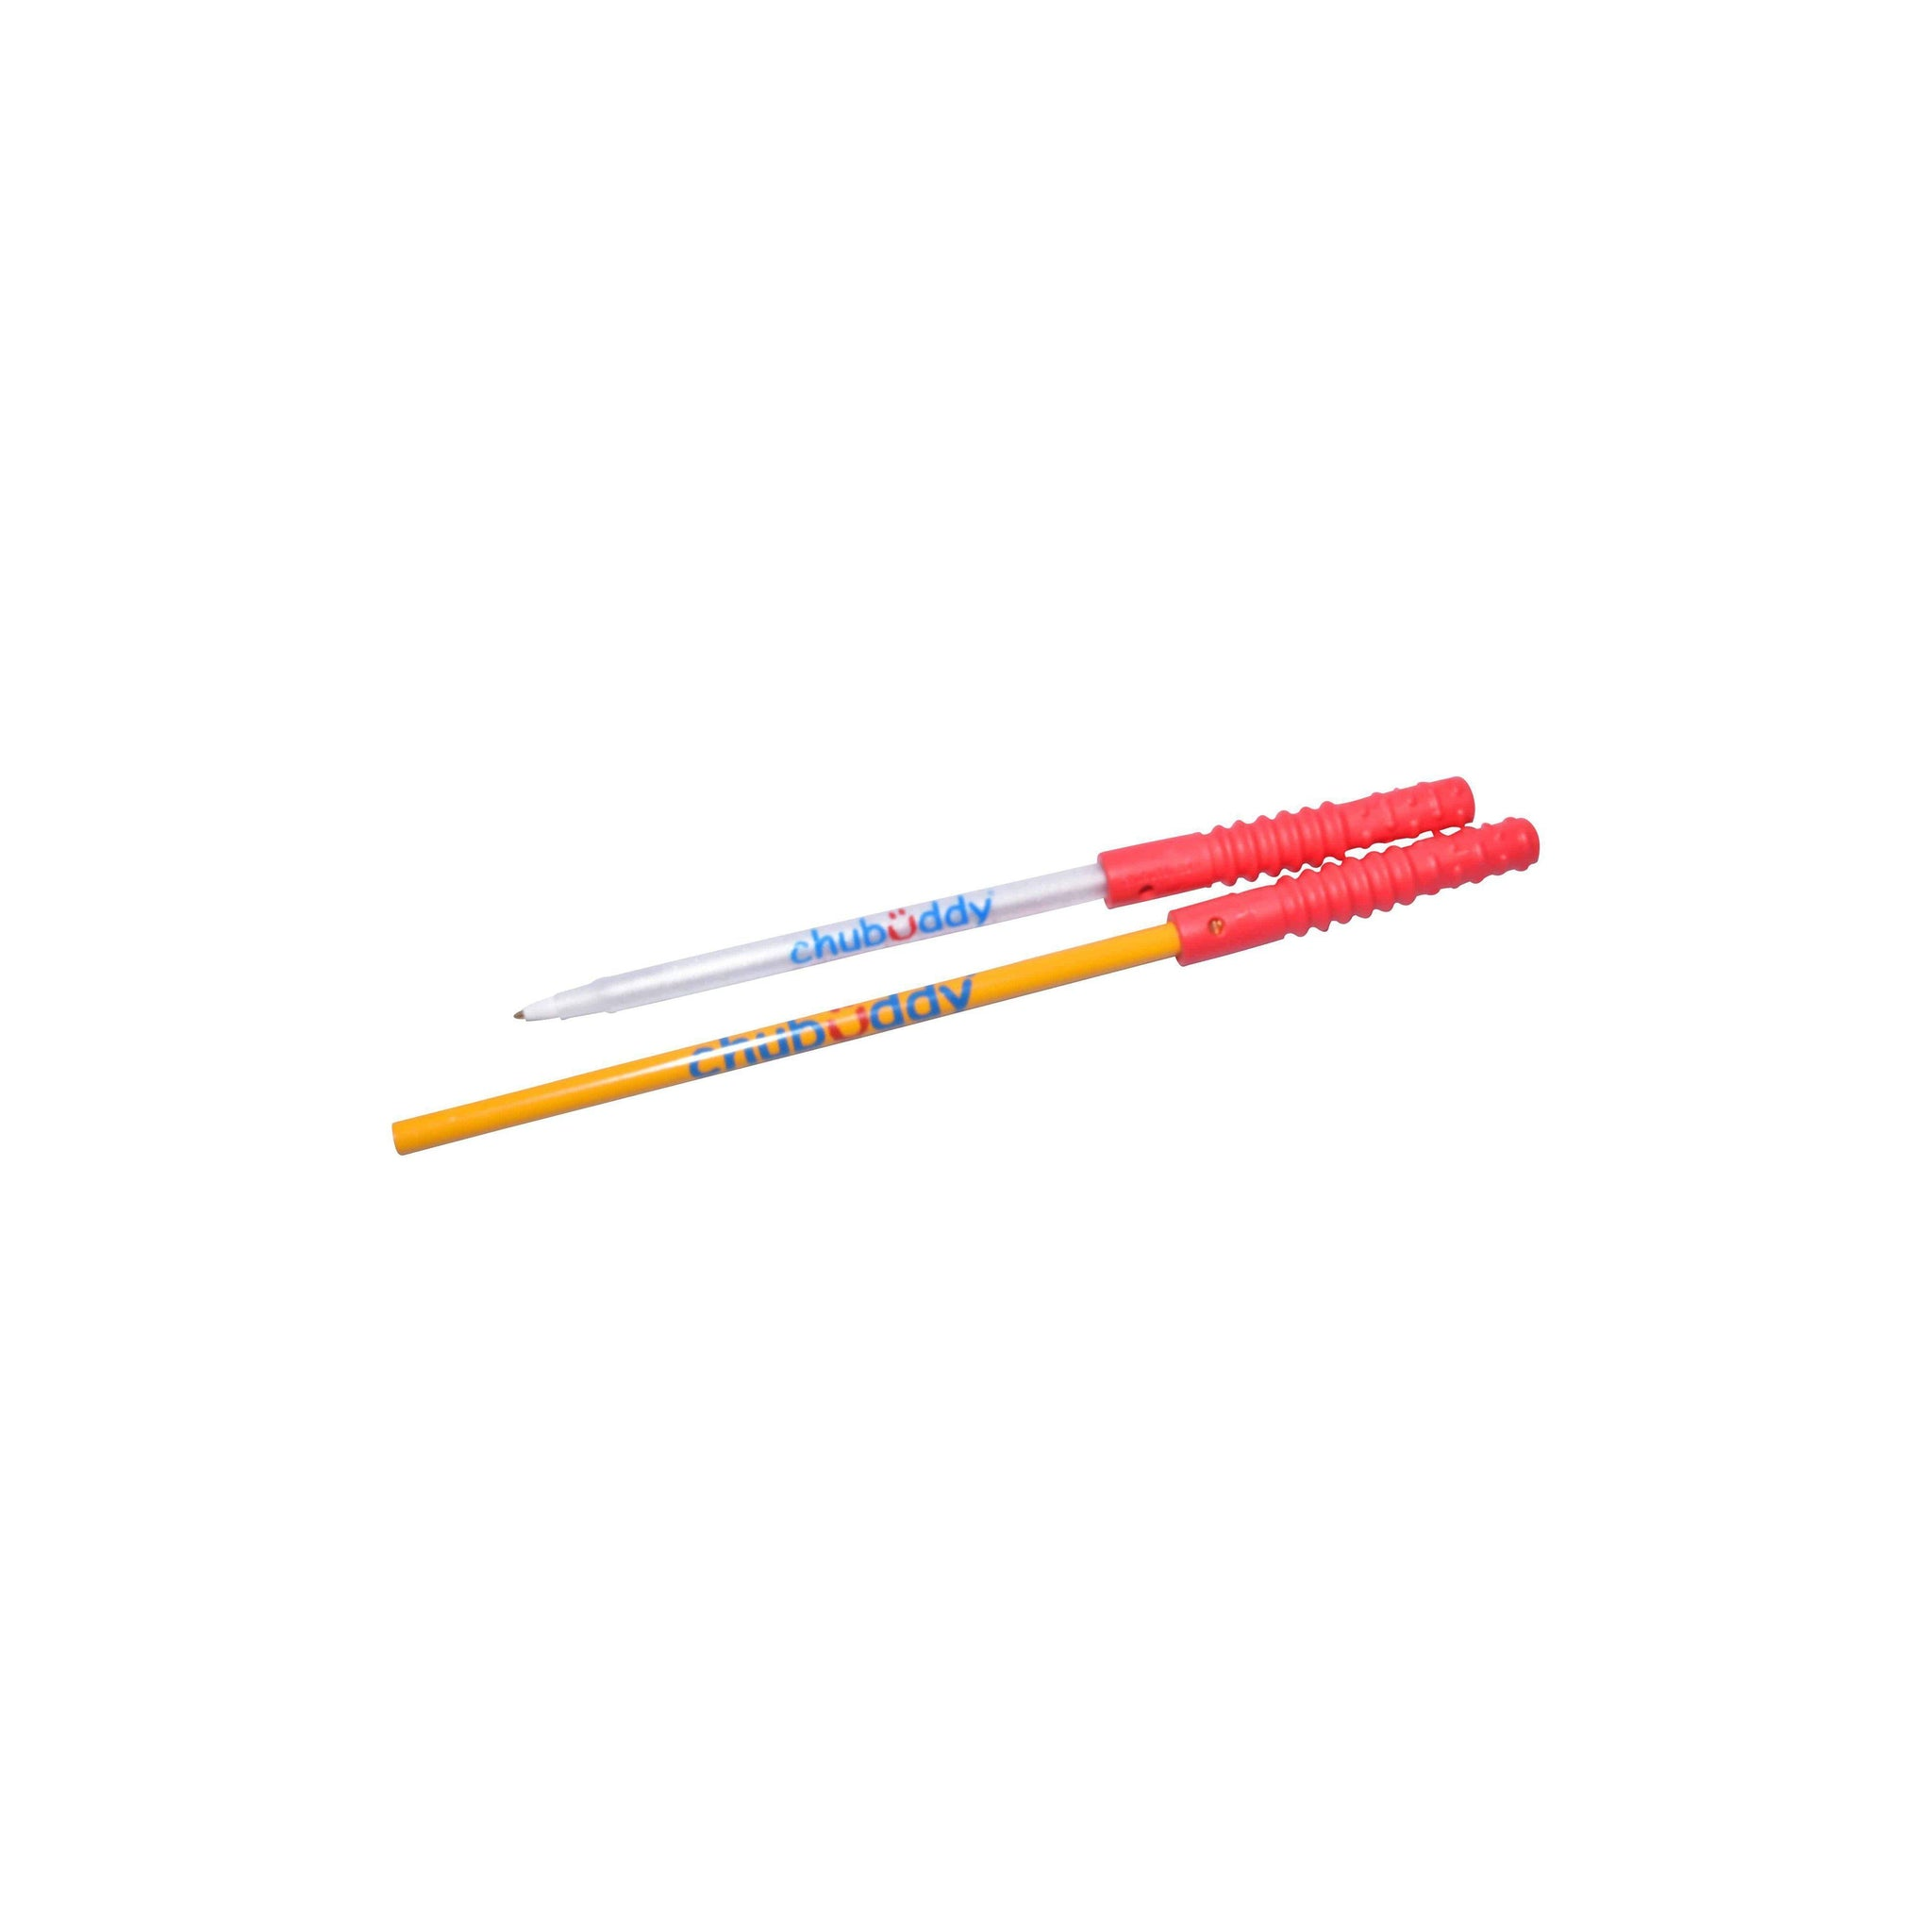 Topper Zilla, Red, Super Strong With Pencil | 70A Durometer Soft | Chew Factor 3.0 Strong | Keeps Pens and Pencils Free From Damage | 2 Textured Chew Zones